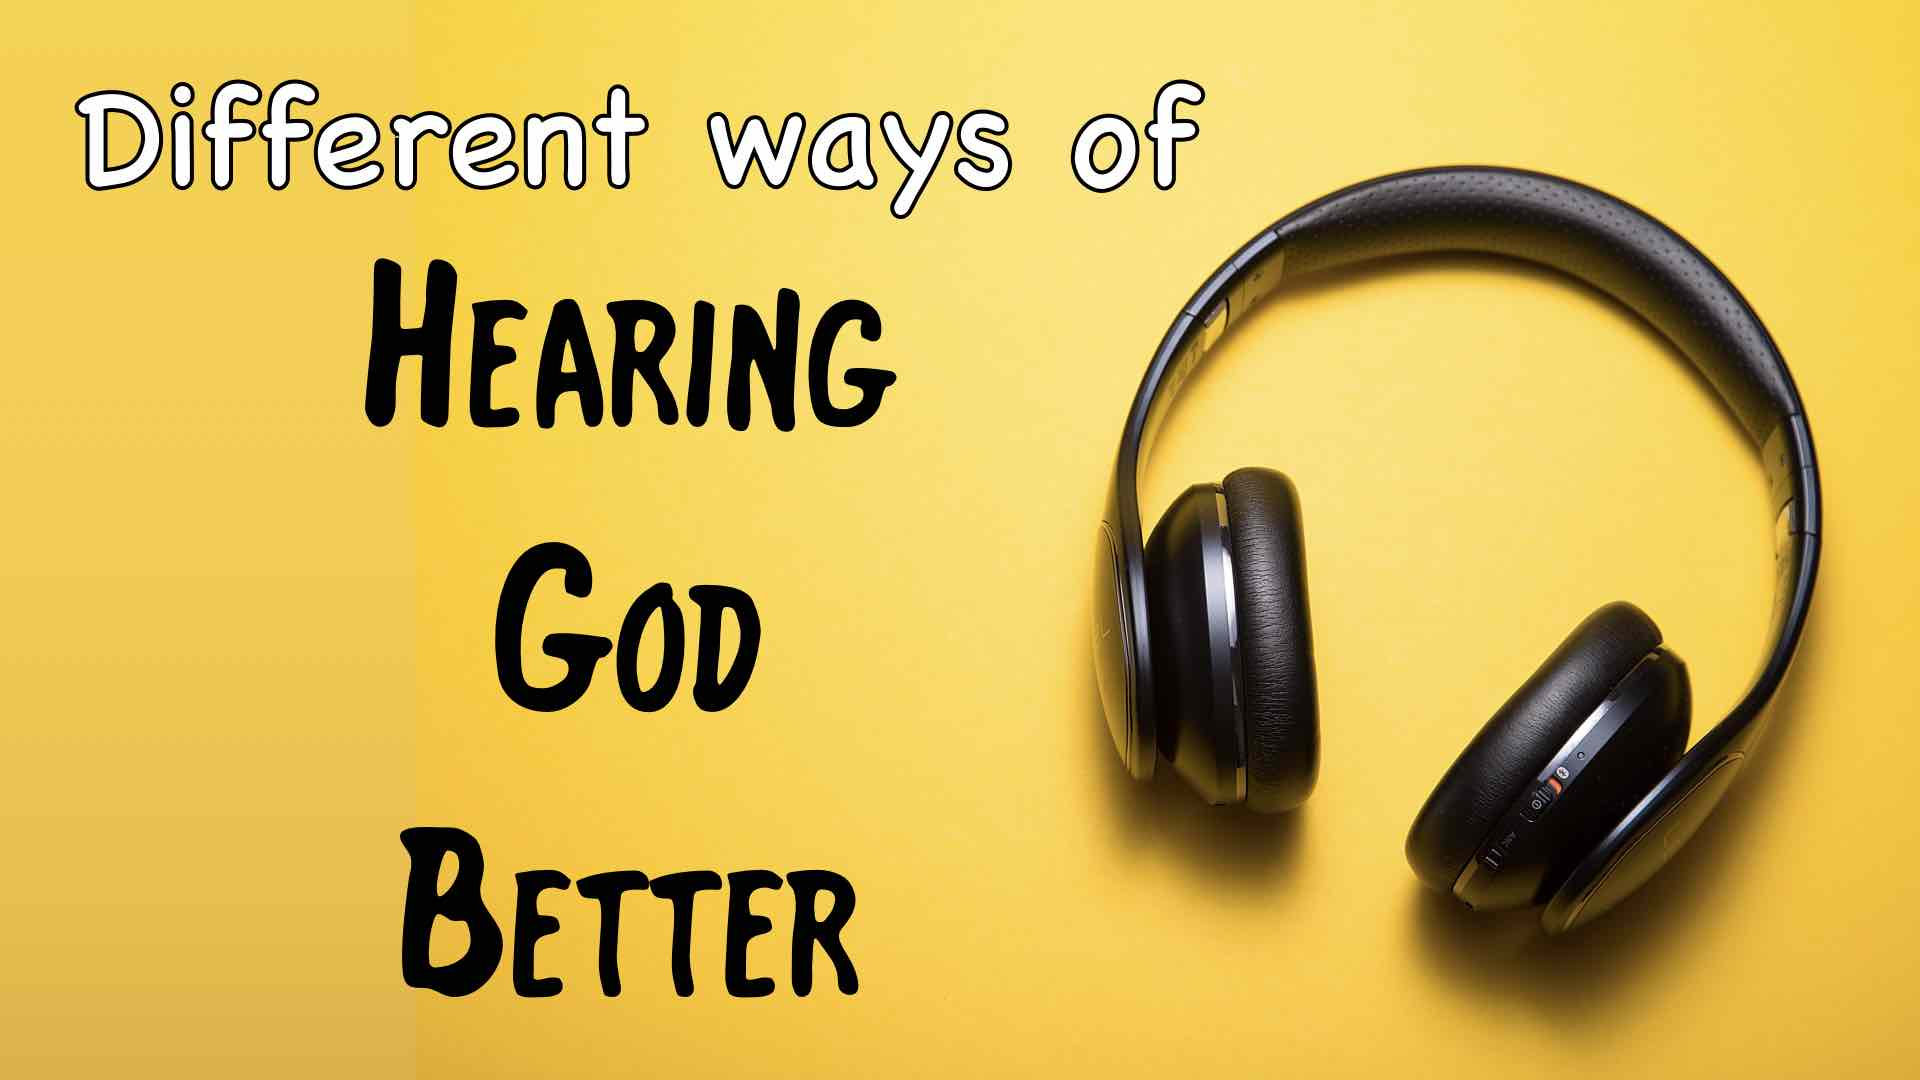 hearing God better - different